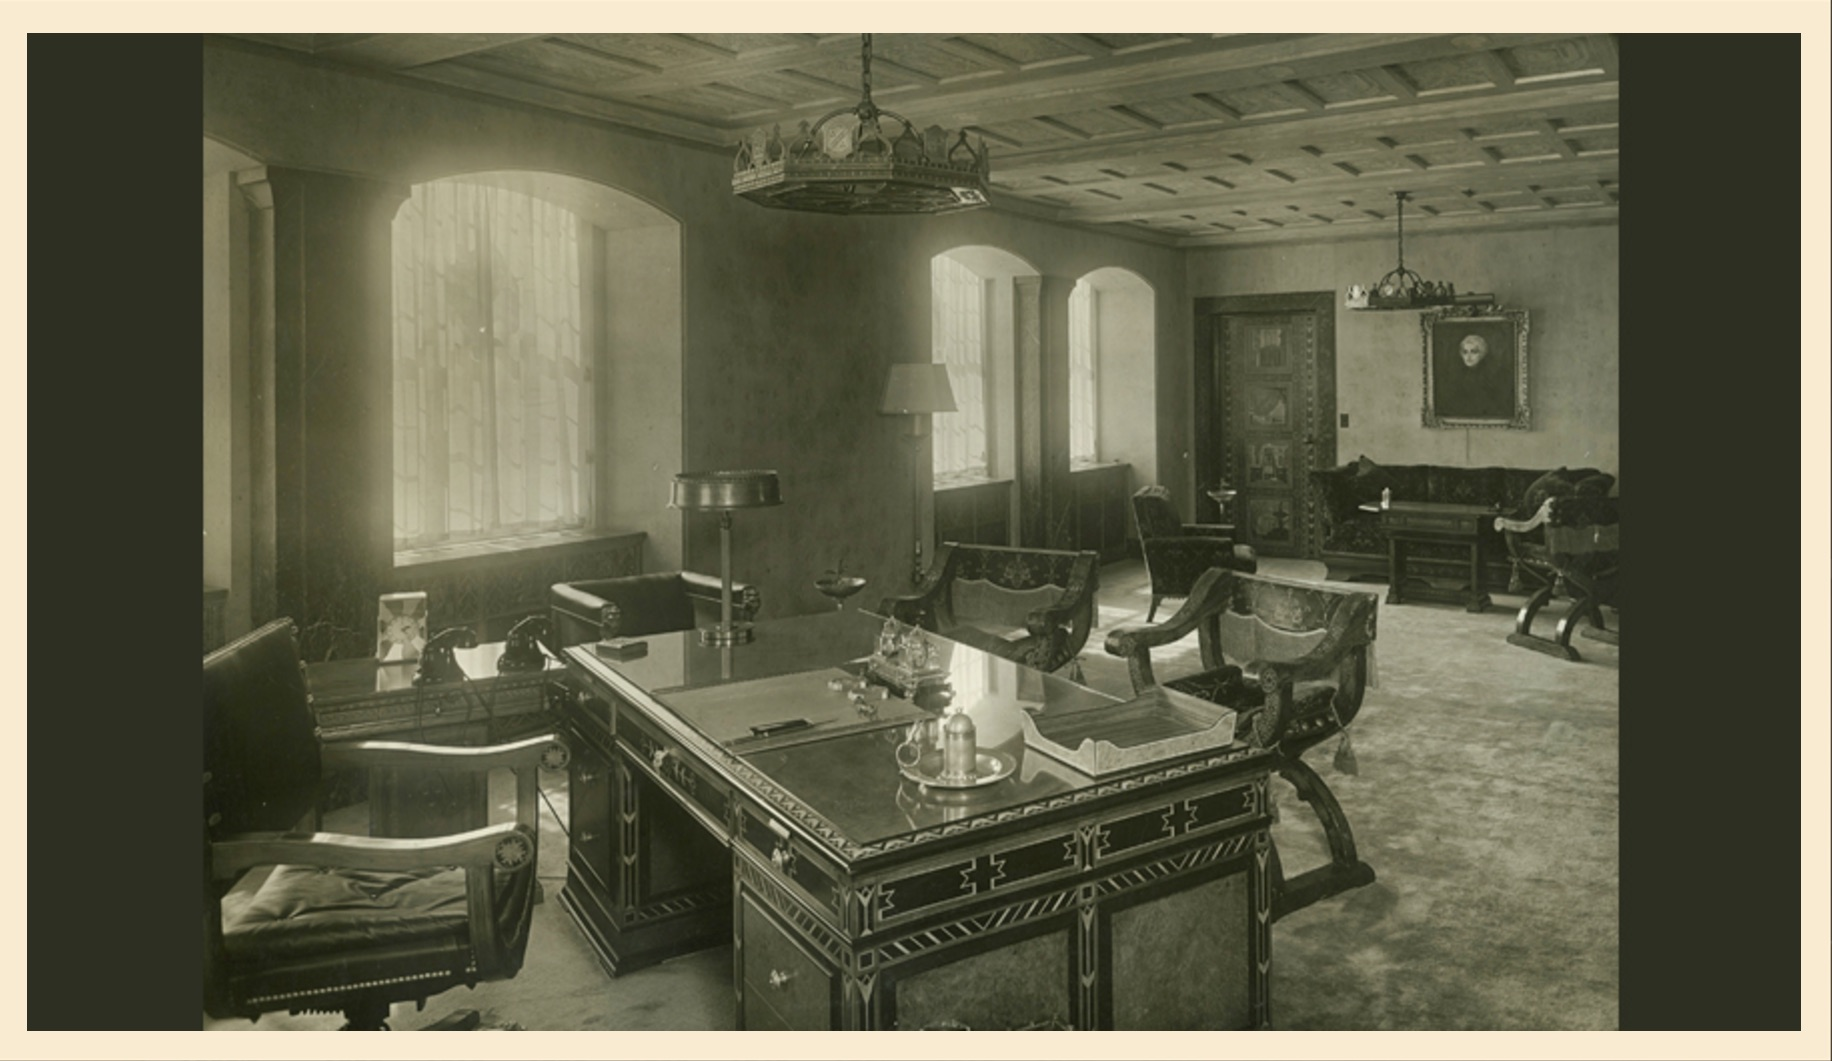 A view of Walter P. Chrysler's office in the Chrysler Building shows a combination of luxury and style but also attention to detail in every element of the office design.